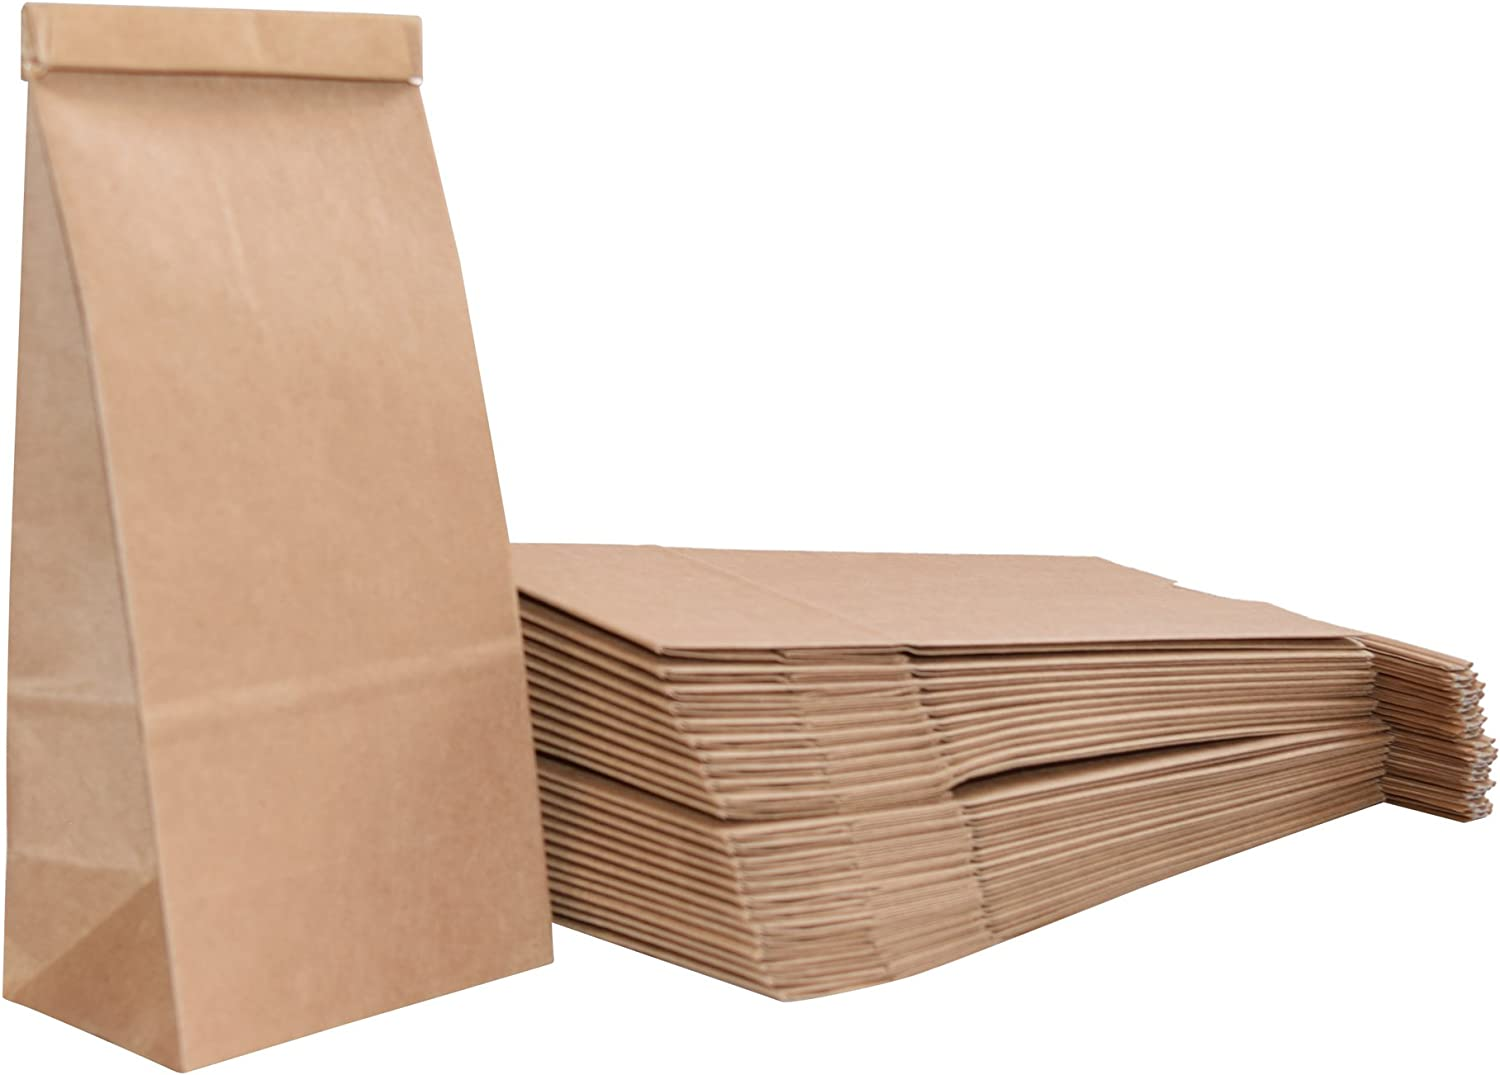 1/2 Pound, Poly-Lined, Kraft Coffee Bags (100 Count) - JA Kitchens